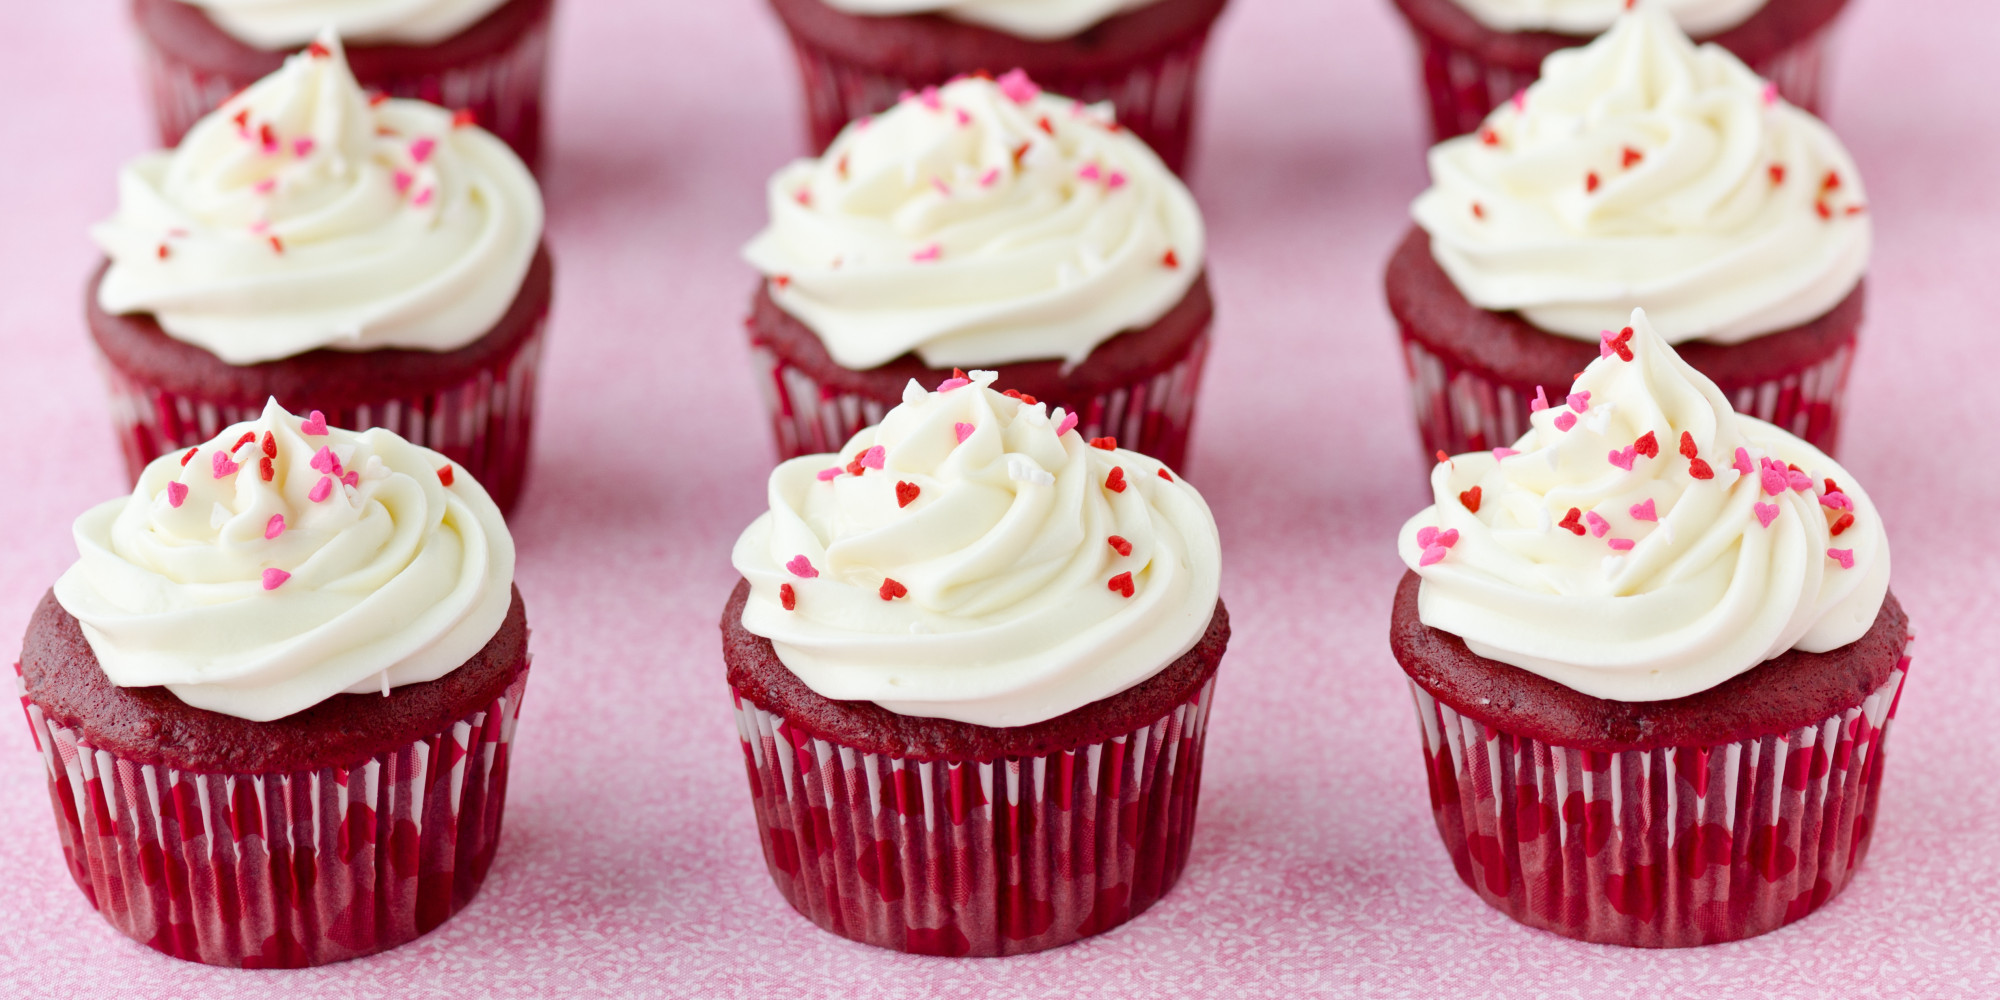 Wicked Good Cupcakes - Entrepreneurism One Bite at a Time   HuffPost